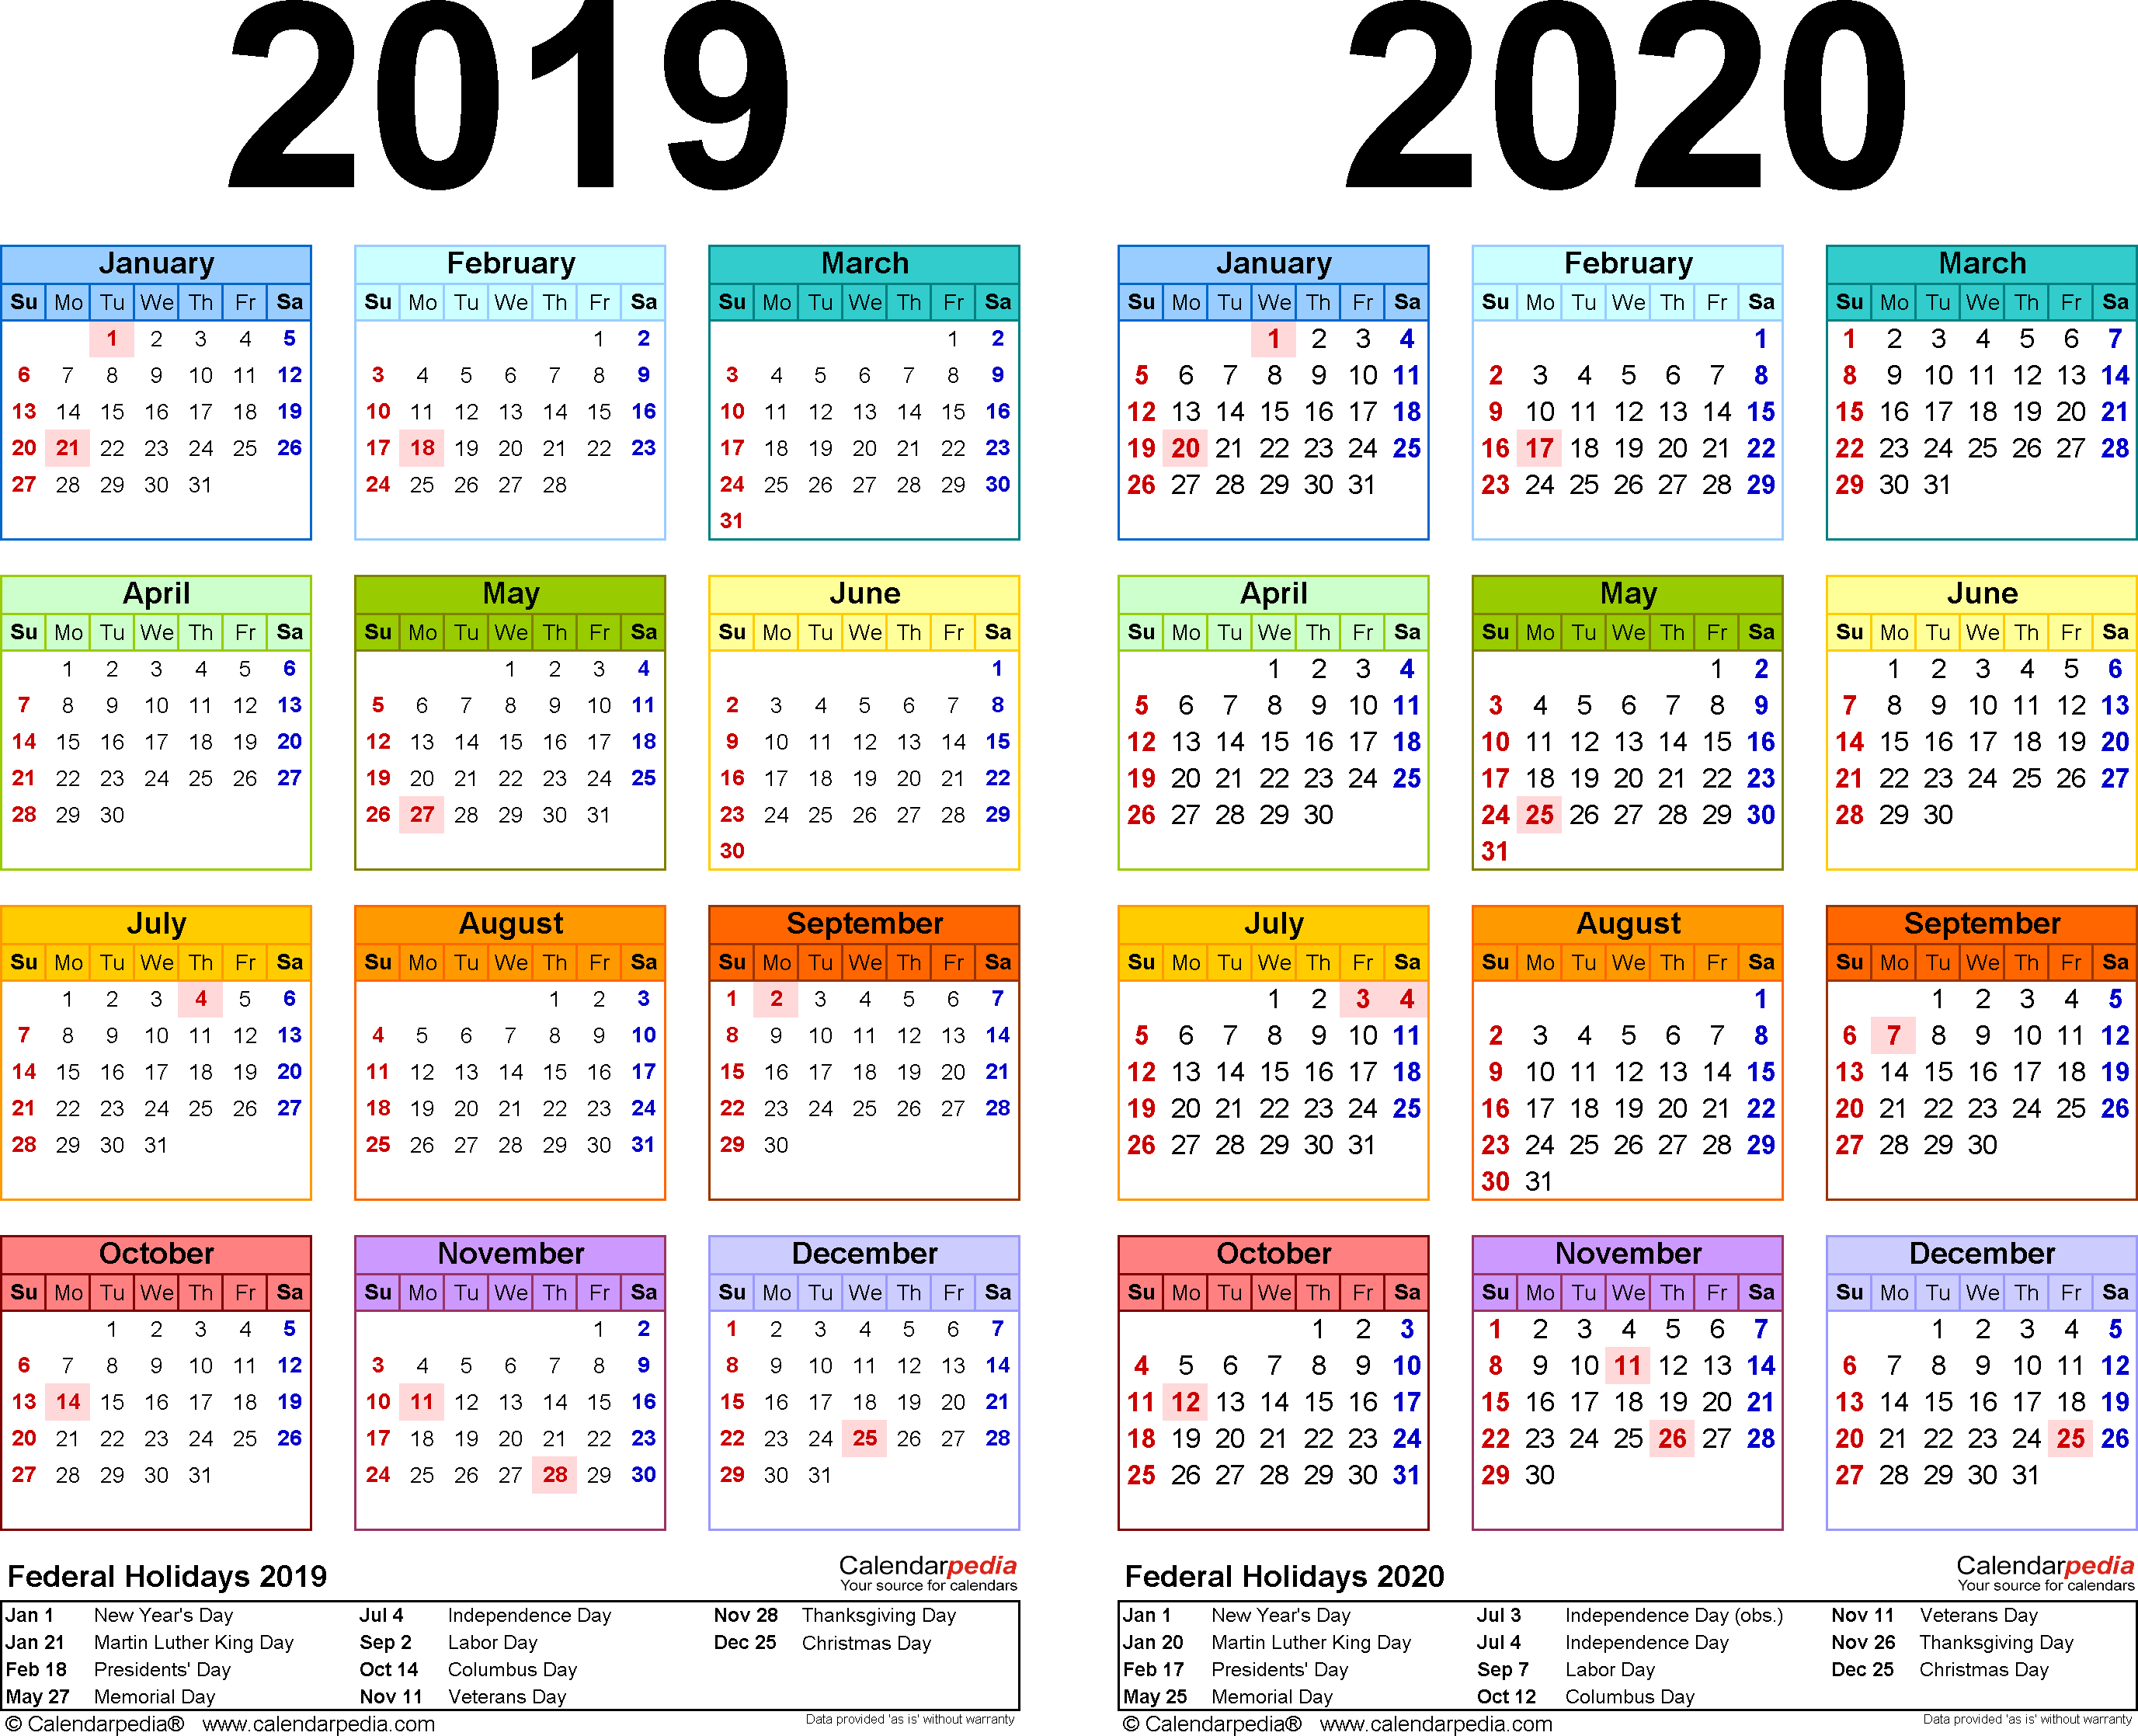 2019-2020 Calendar - Free Printable Two-Year Pdf Calendars in Free Printable Calendar 2019 To 2020